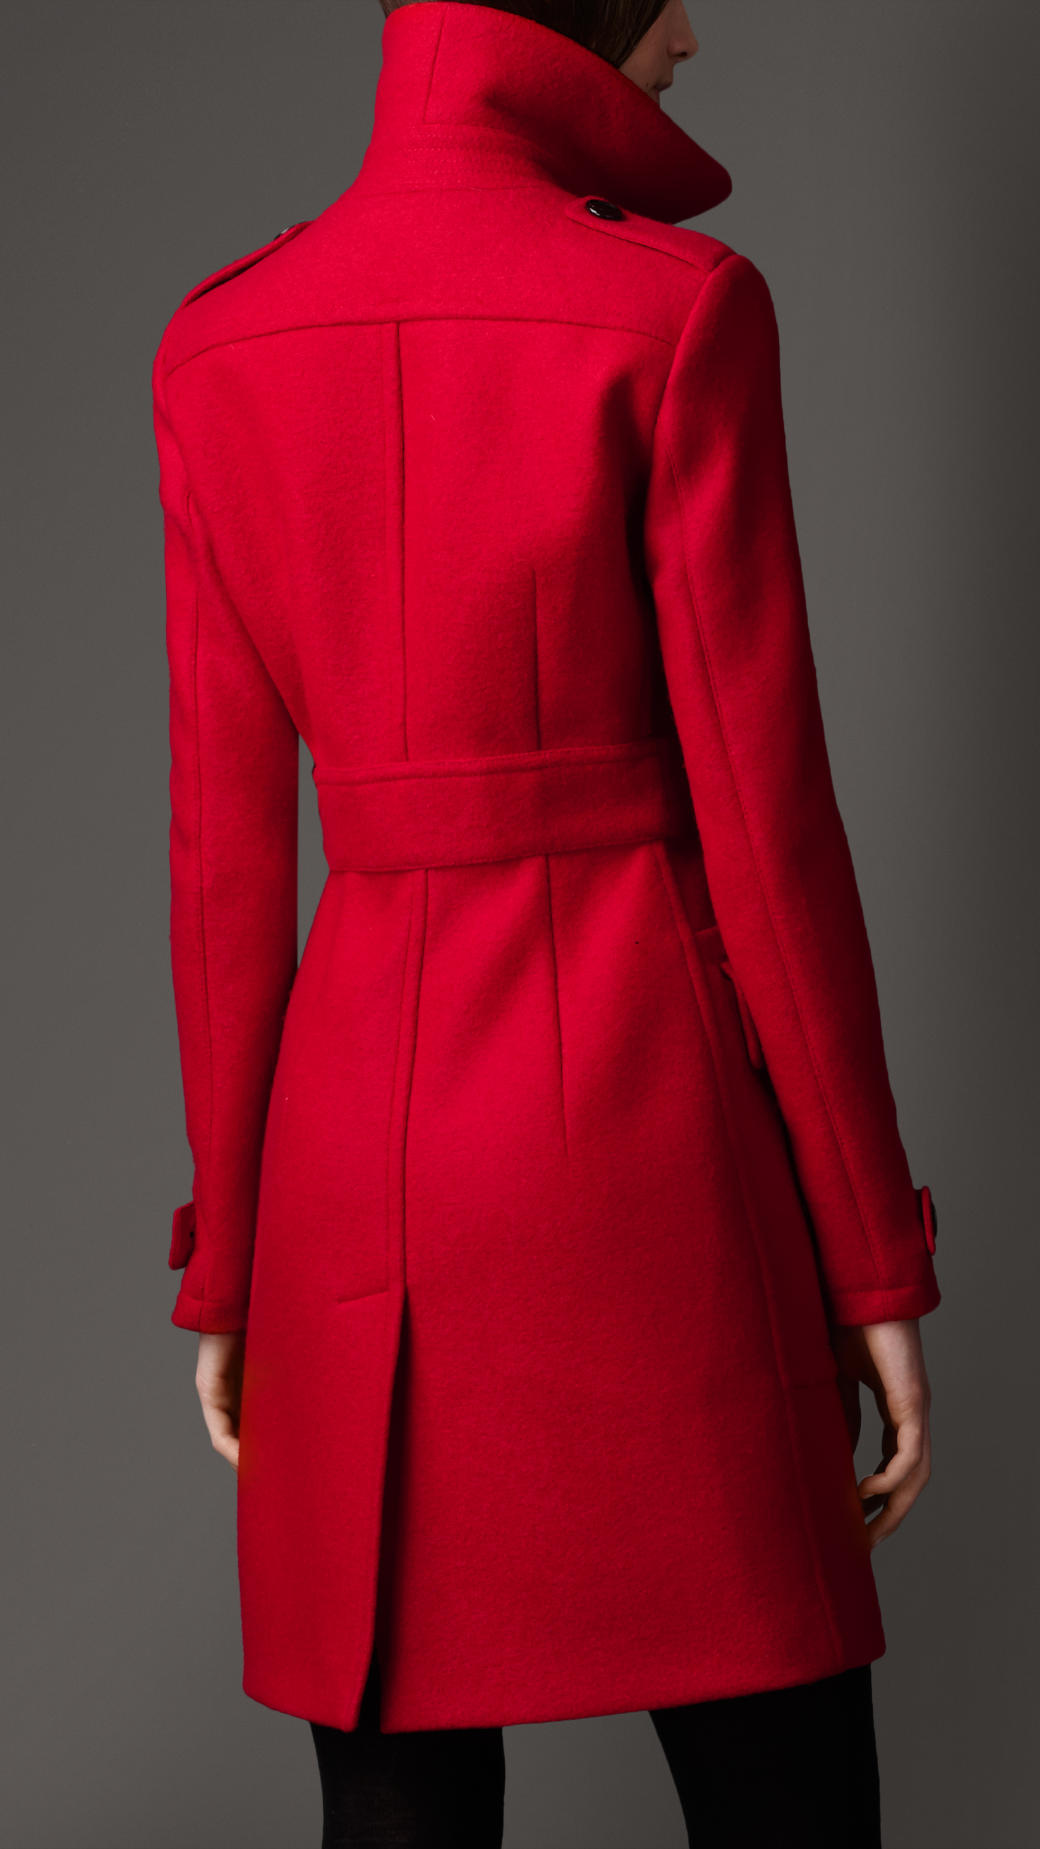 Burberry Buckle Detail Wool Coat in Red | Lyst